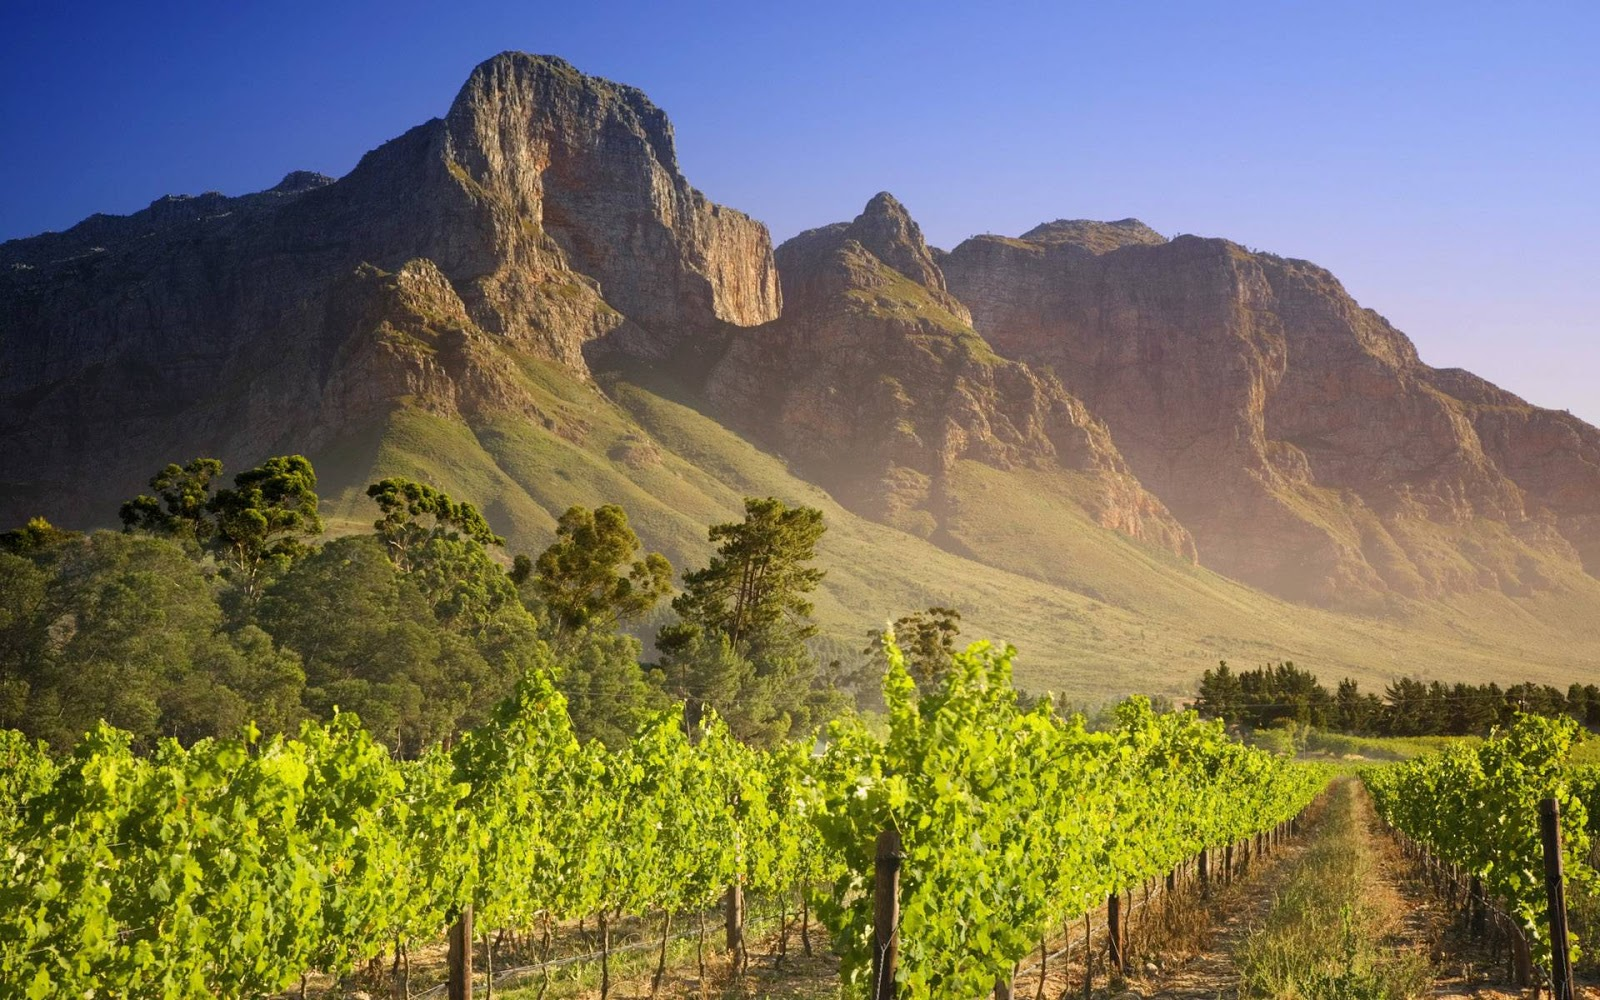 Vineyard South Africa wallpapers